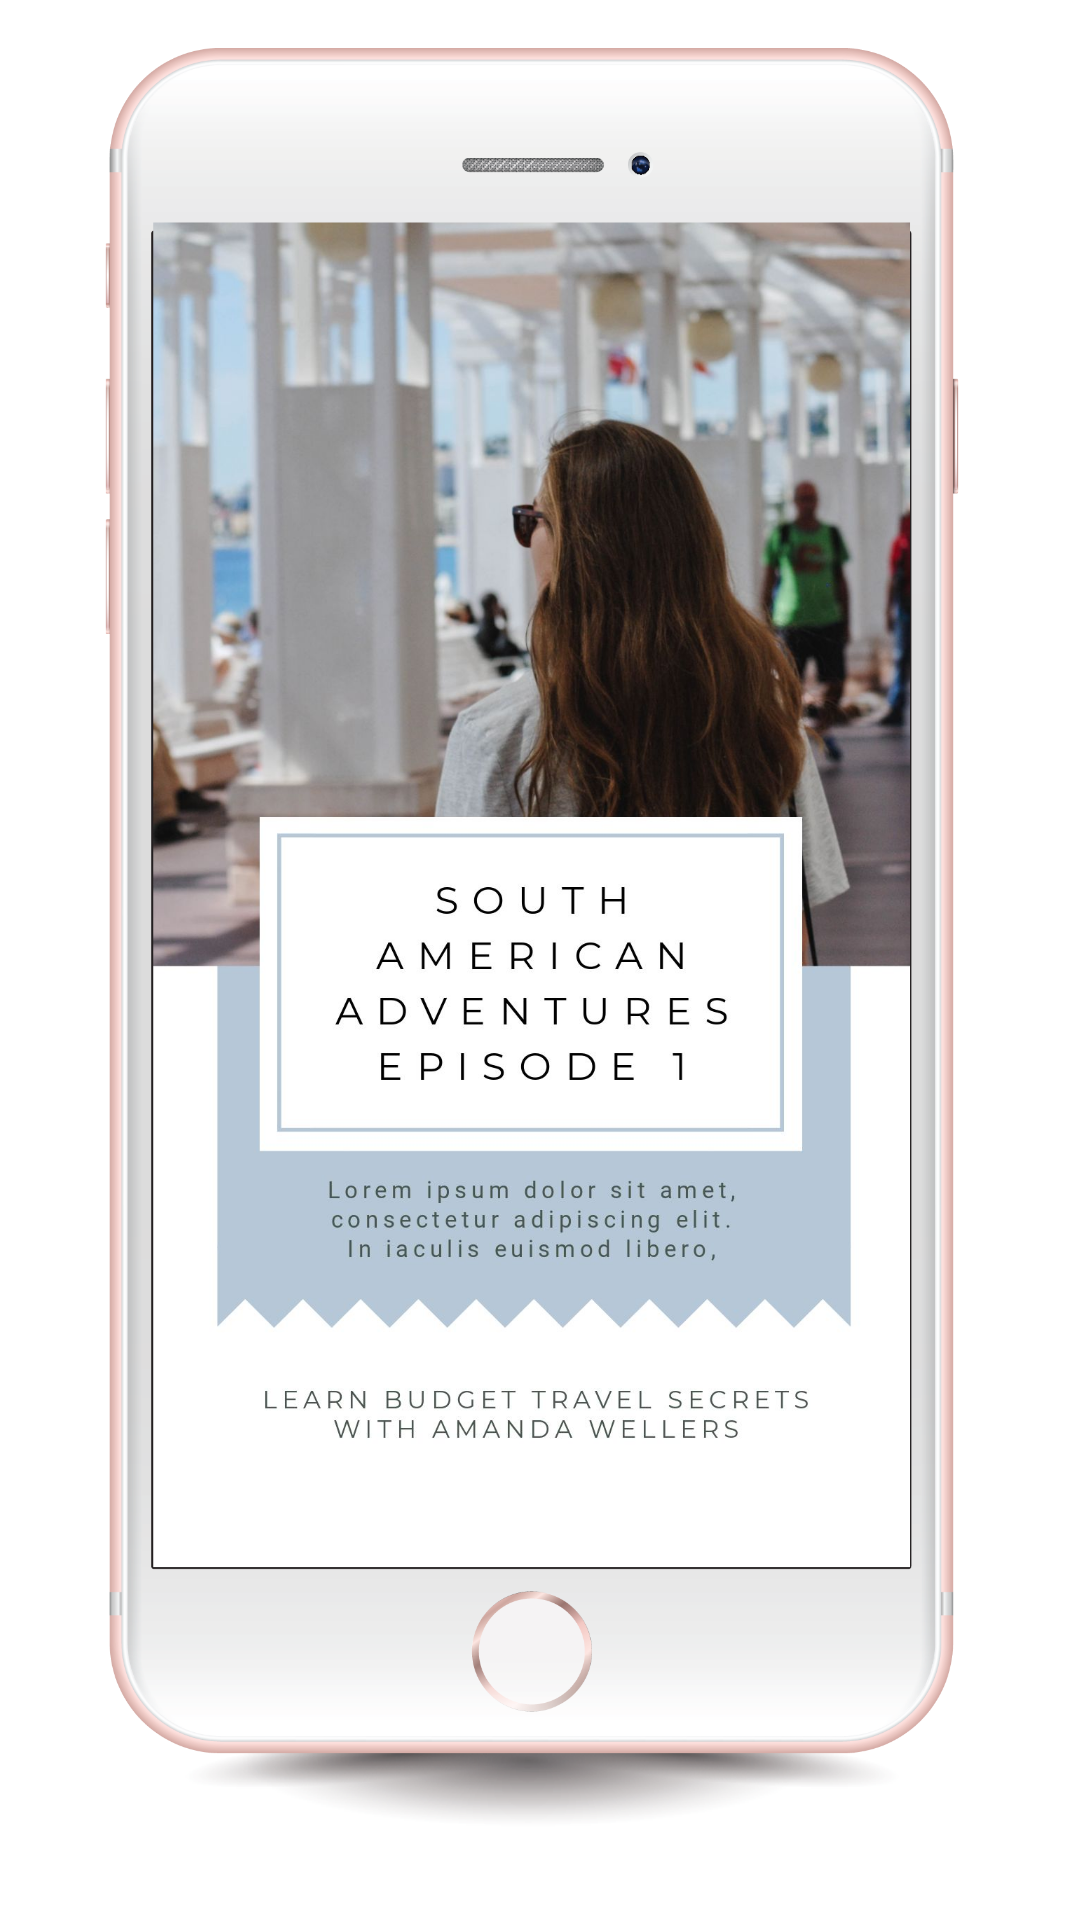 Tourism and Travel IGTV Cover Template - 17 Stunning IGTV Templates for your Instagram TV Channel #InstagramTips